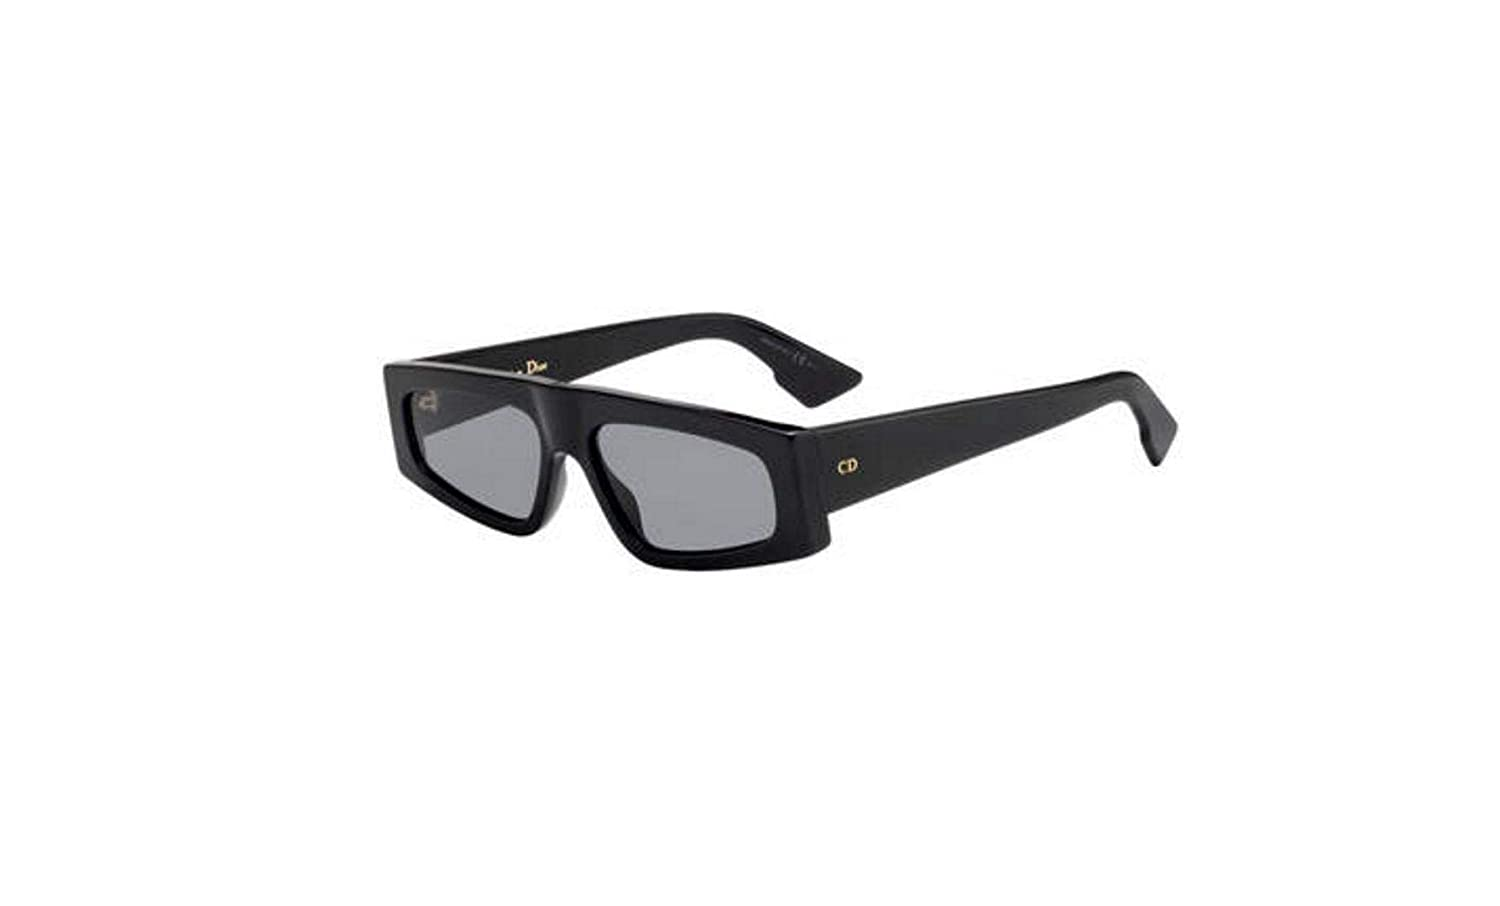 64d752bee383 Amazon.com  Authentic Christian Dior Power 0807 2K Black Sunglasses   Clothing